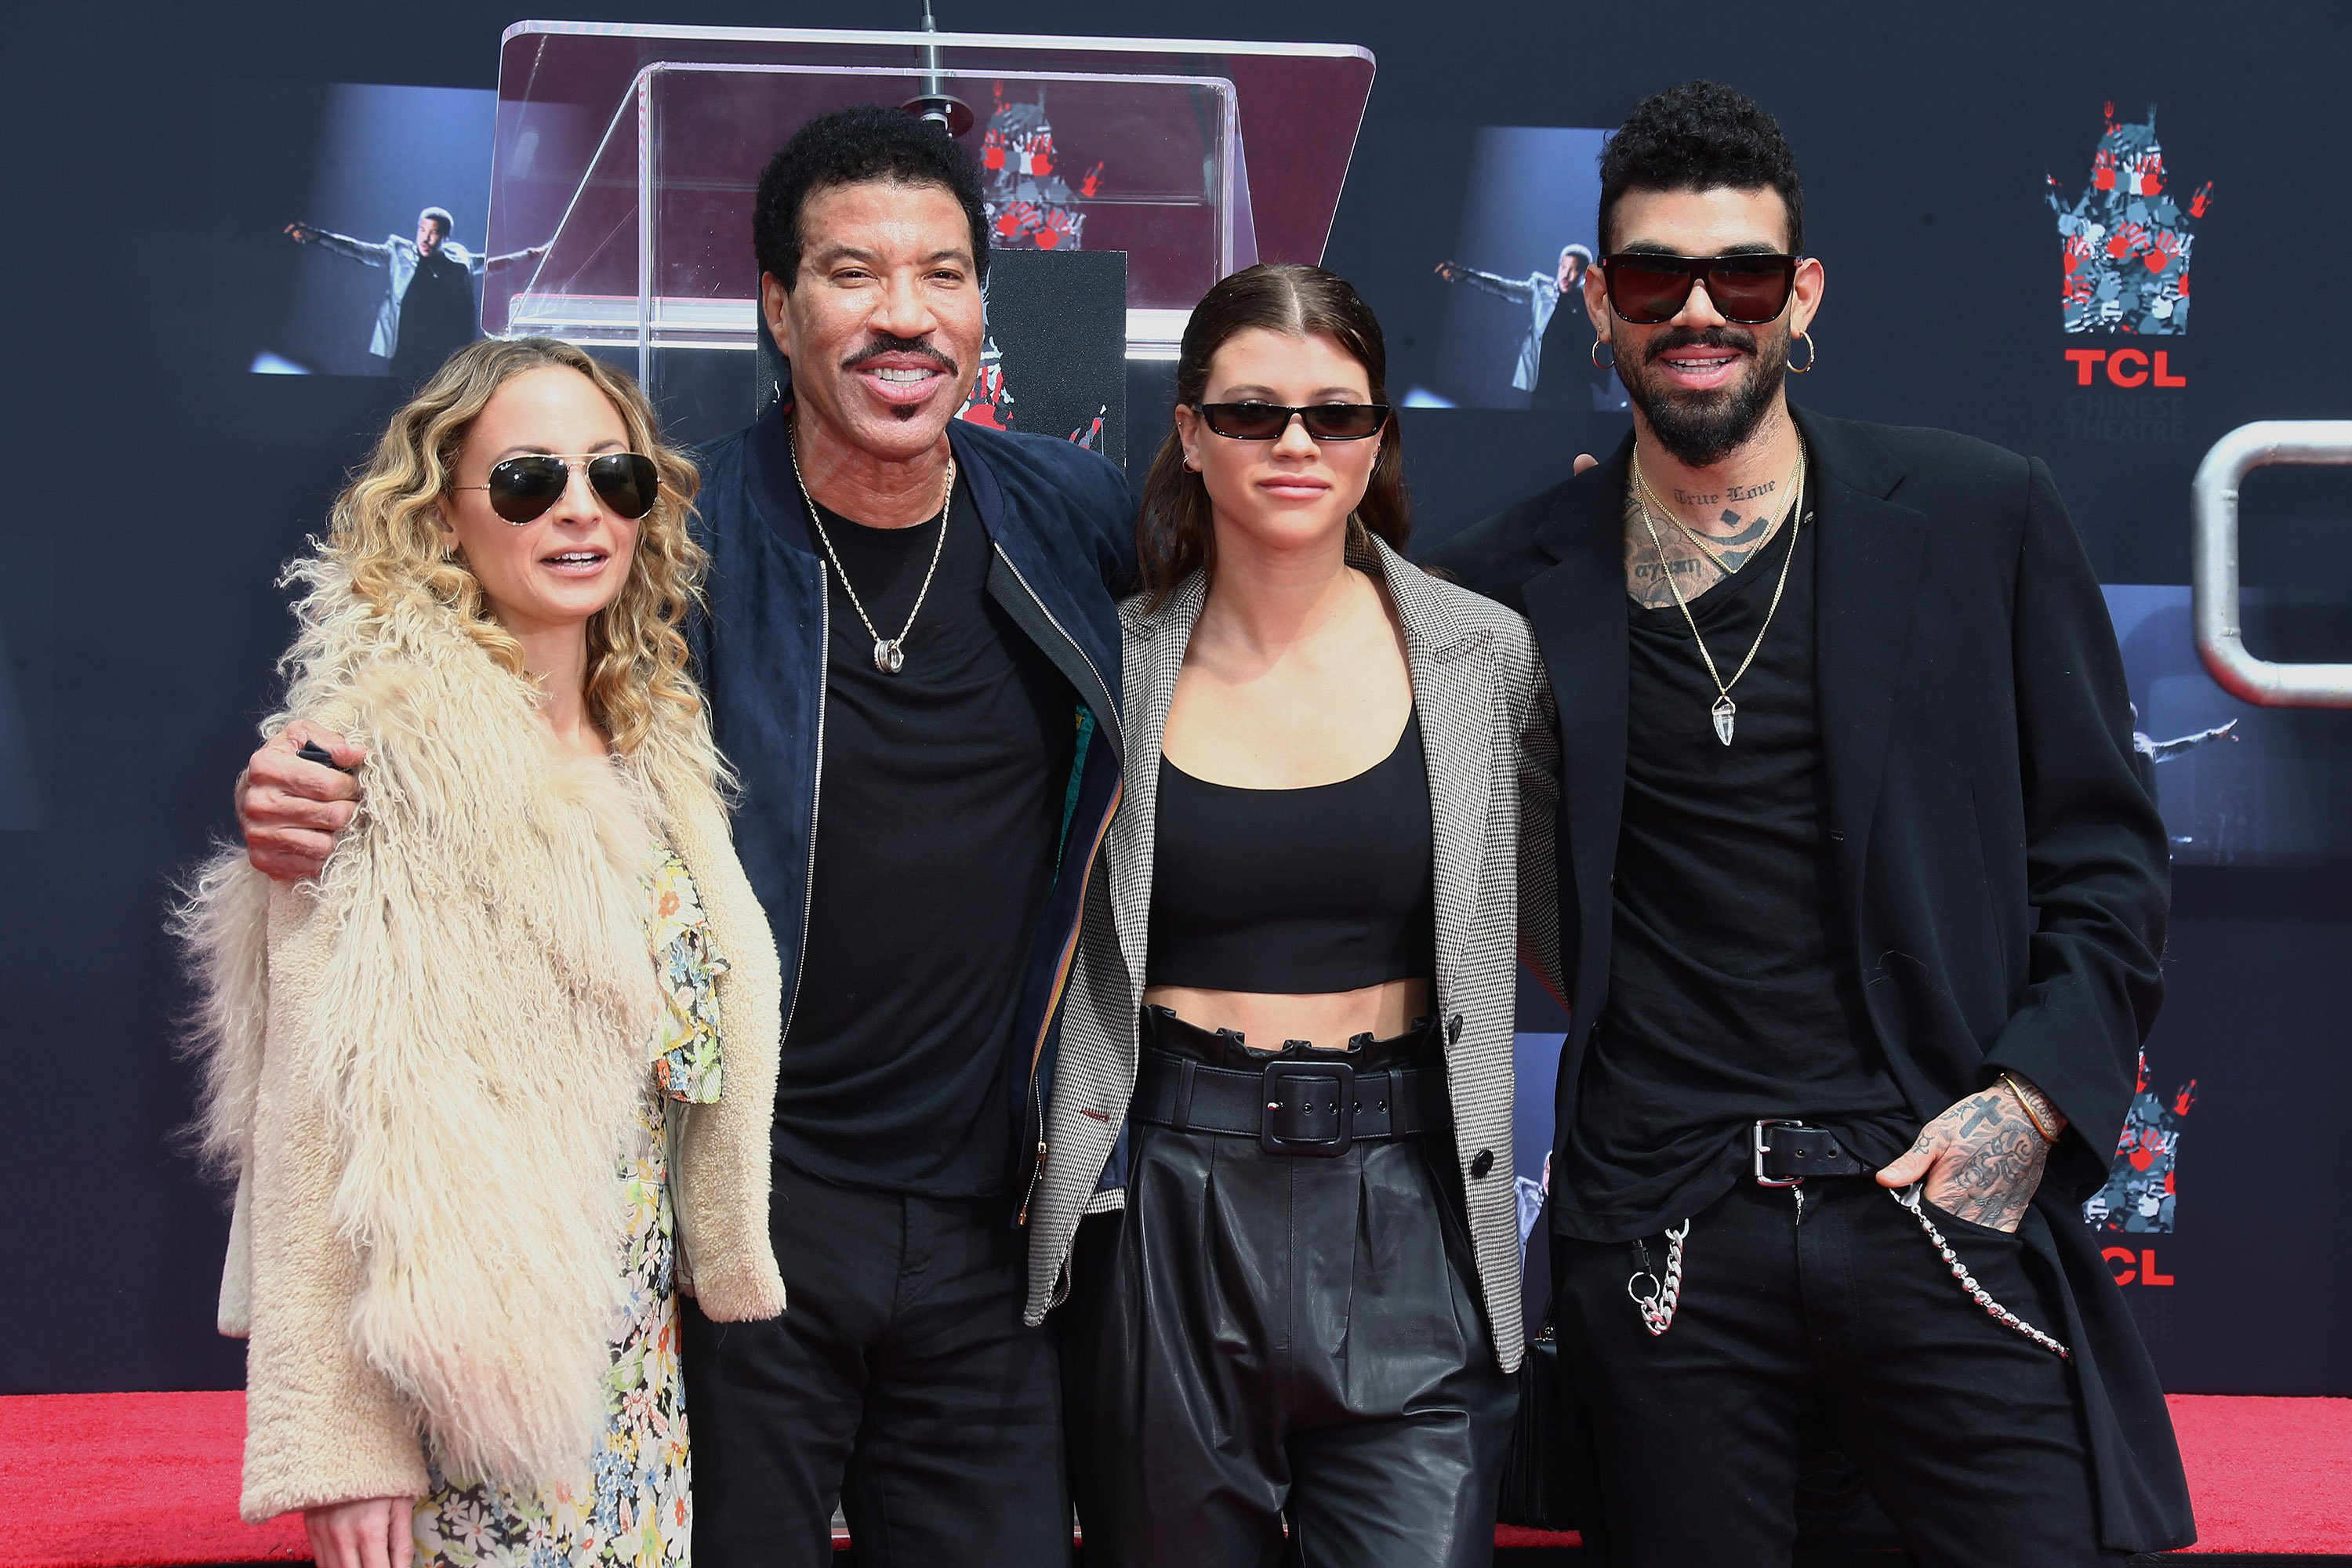 Nicole Richie, Lionel Richie, Sofia Richie and Miles Richie at the Lionel Richie Hand And Footprint Ceremony on March 7, 2018 | Photo: Getty Images